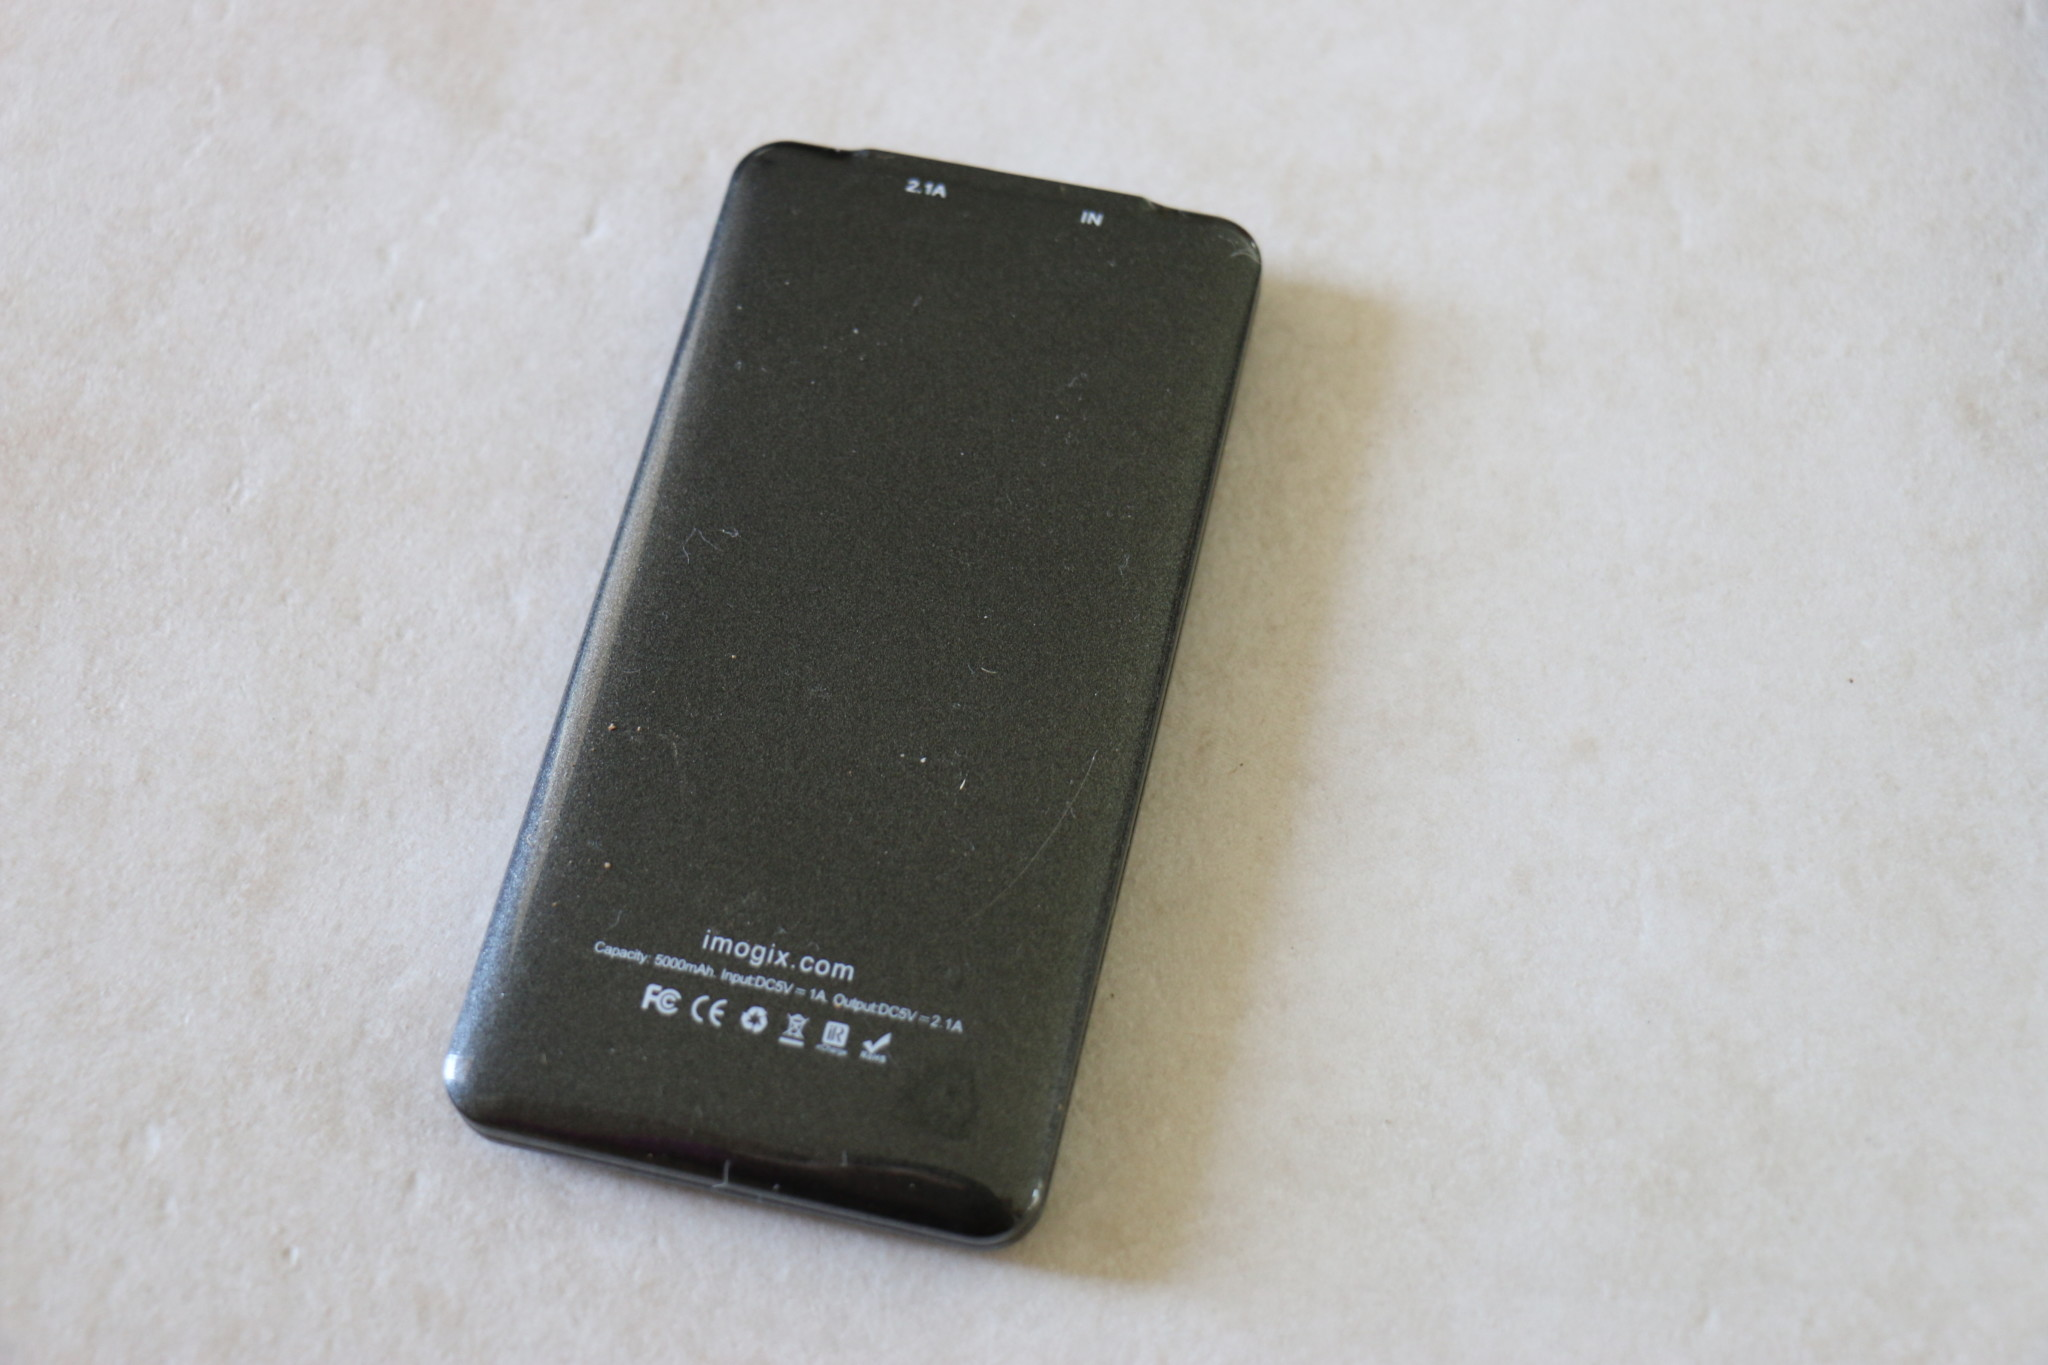 Mogix Portable Charger - back view